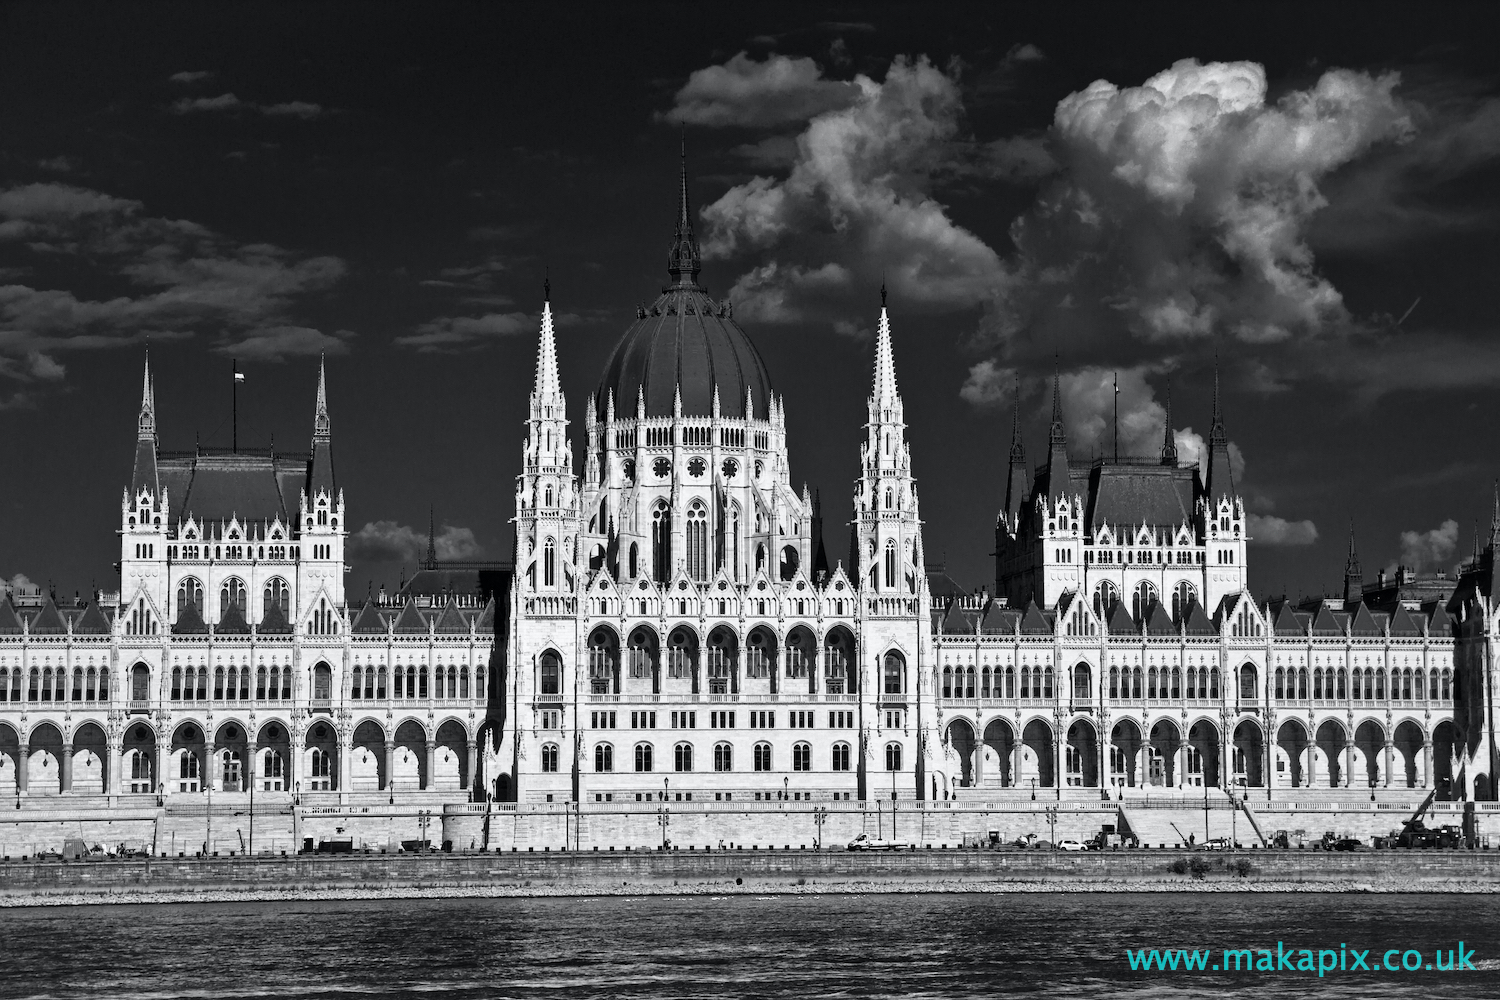 The Budapest Parliament Building in black and white